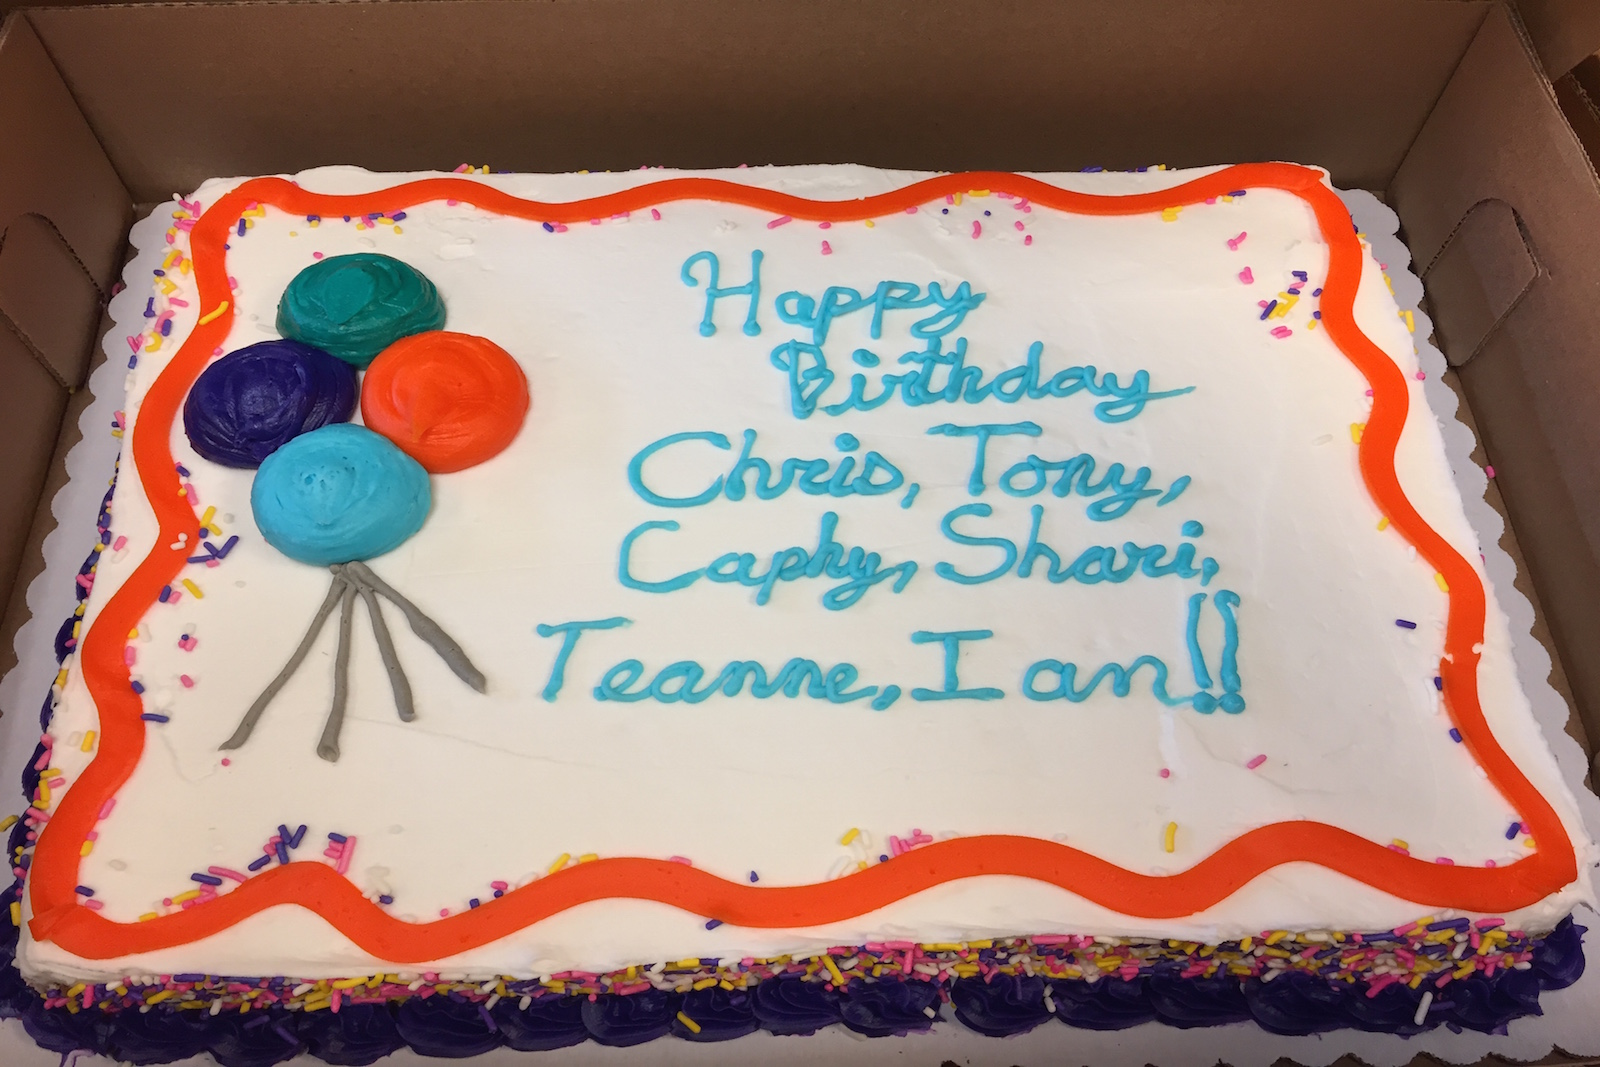 Epic Spelling Errors On Birthday Cake Leaves Us Shaking Our Heads